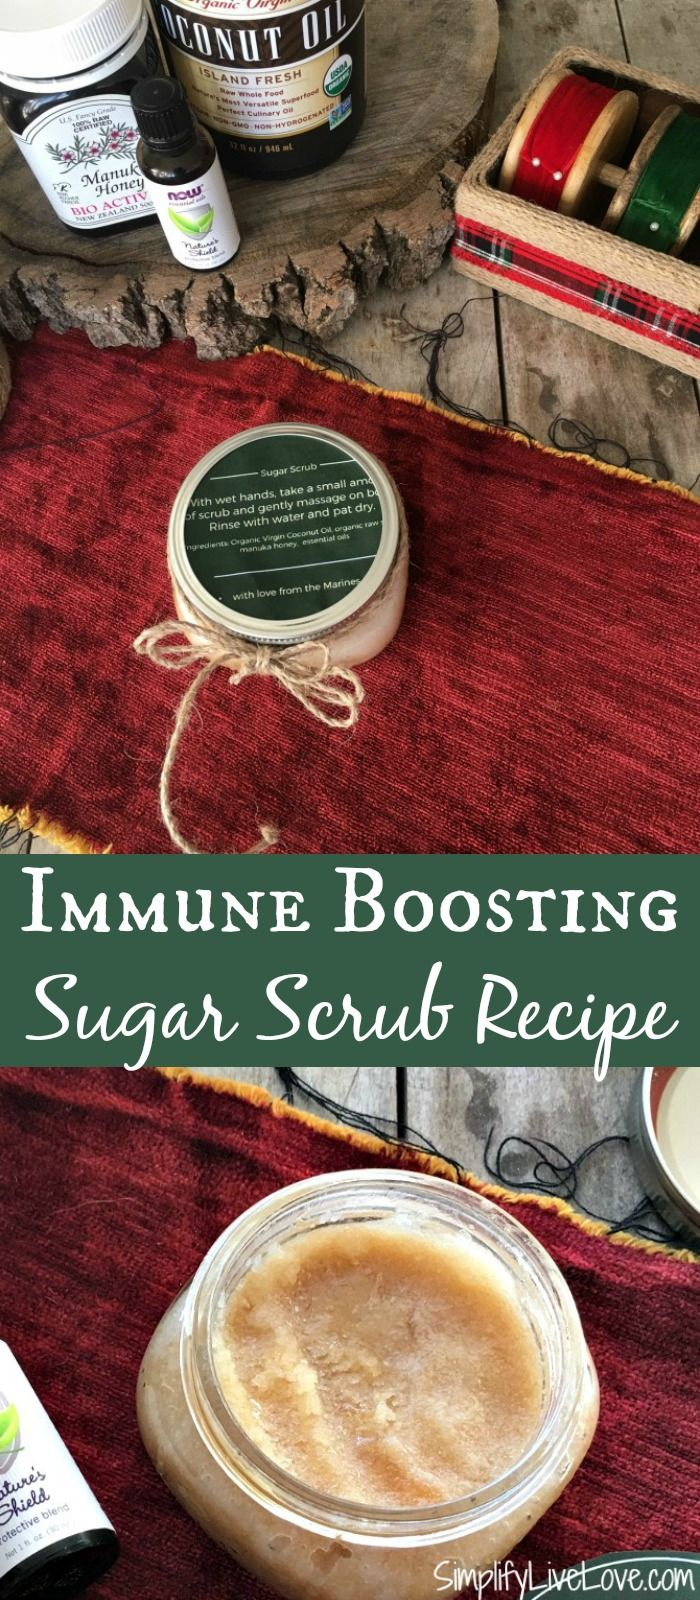 Here's an immune boosting sugar scrub recipe that smells great & leaves skin soft & lovely. Made in 5 minutes, it's a great last minute, practical gift too.